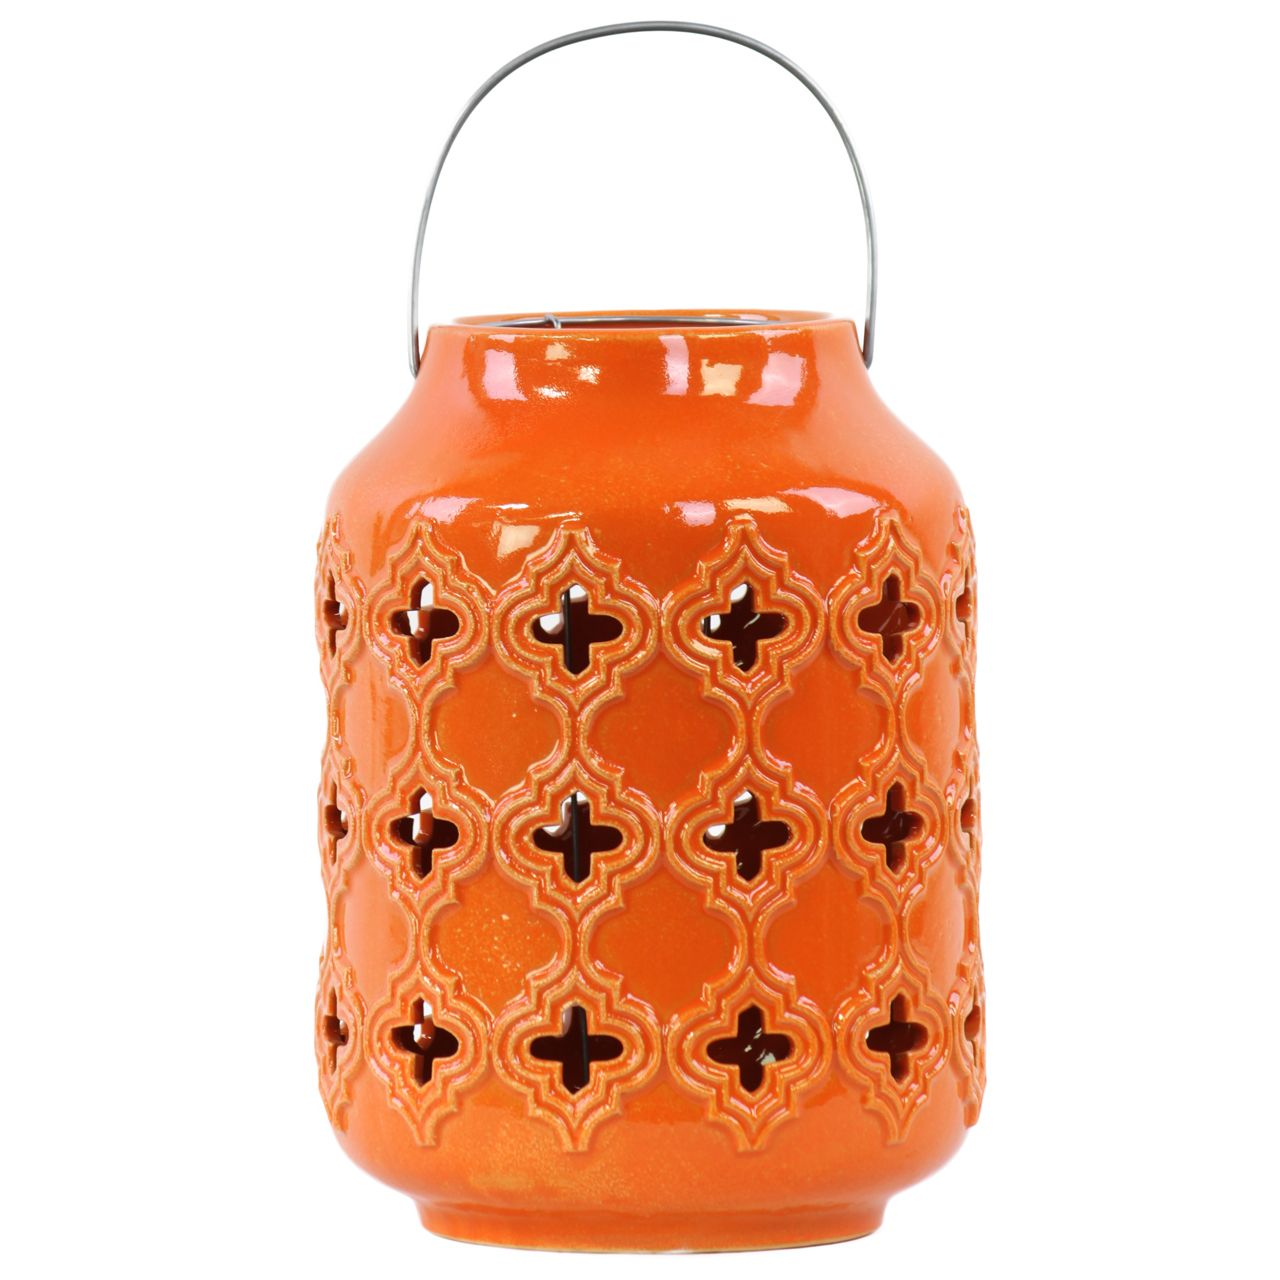 Urban Trends Collection Gloss Cylindrical Lantern with Cutout Walls and Metal Handle